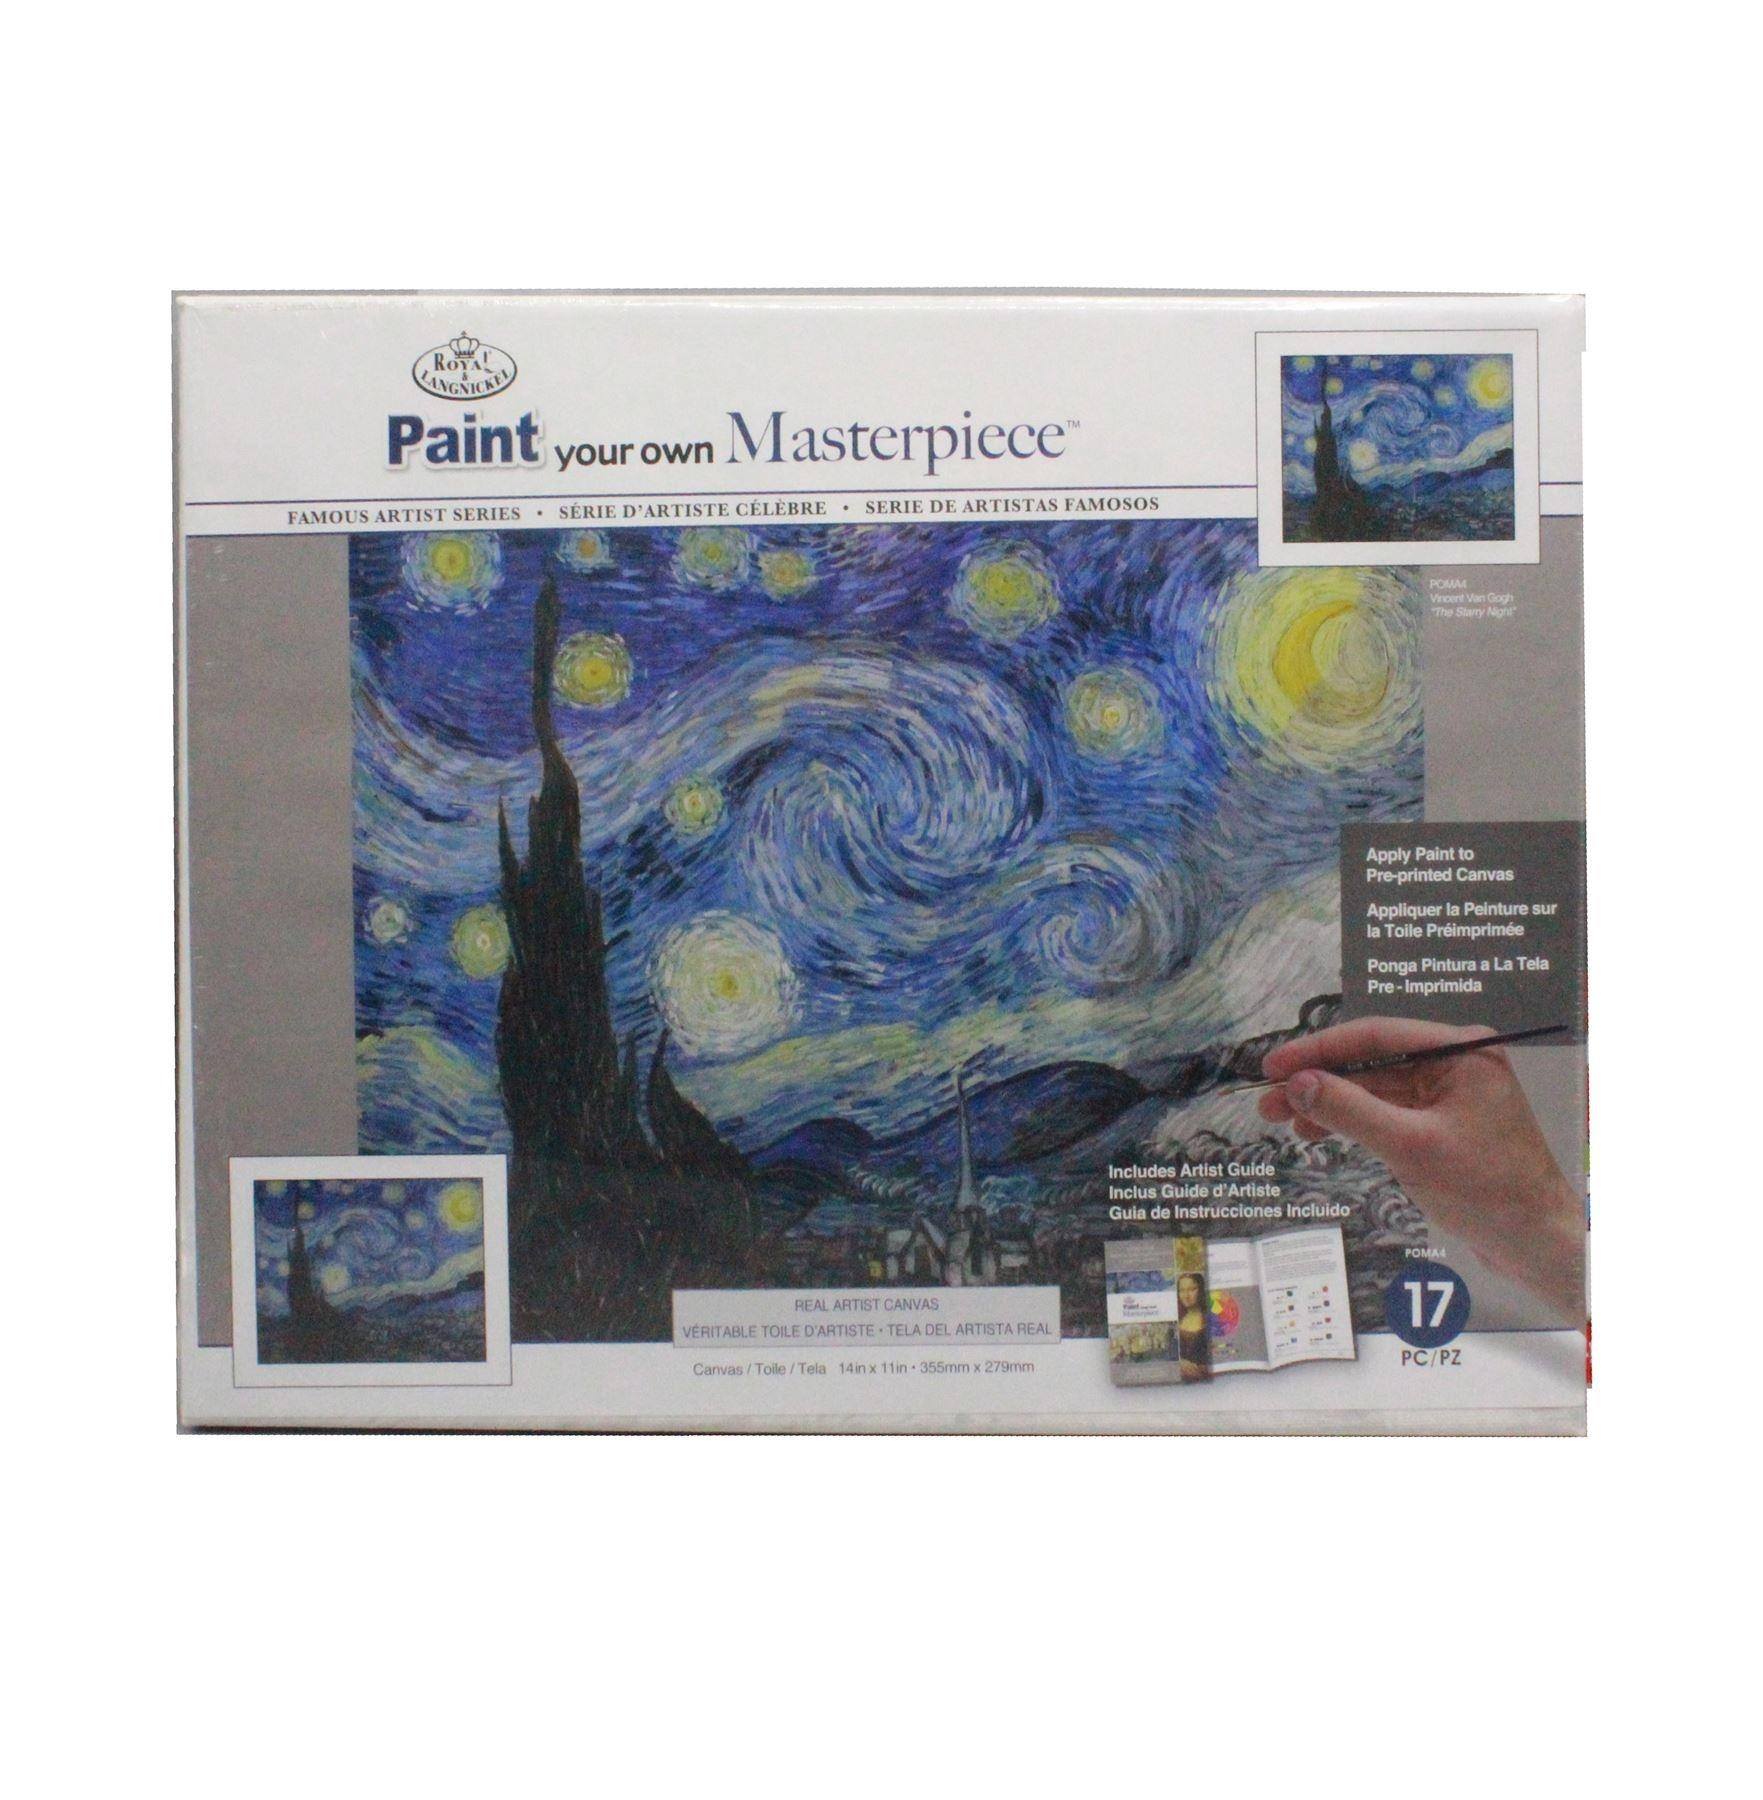 Paint your own Masterpiece Vincent Van Gogh Starry Night Royal & Langnickel